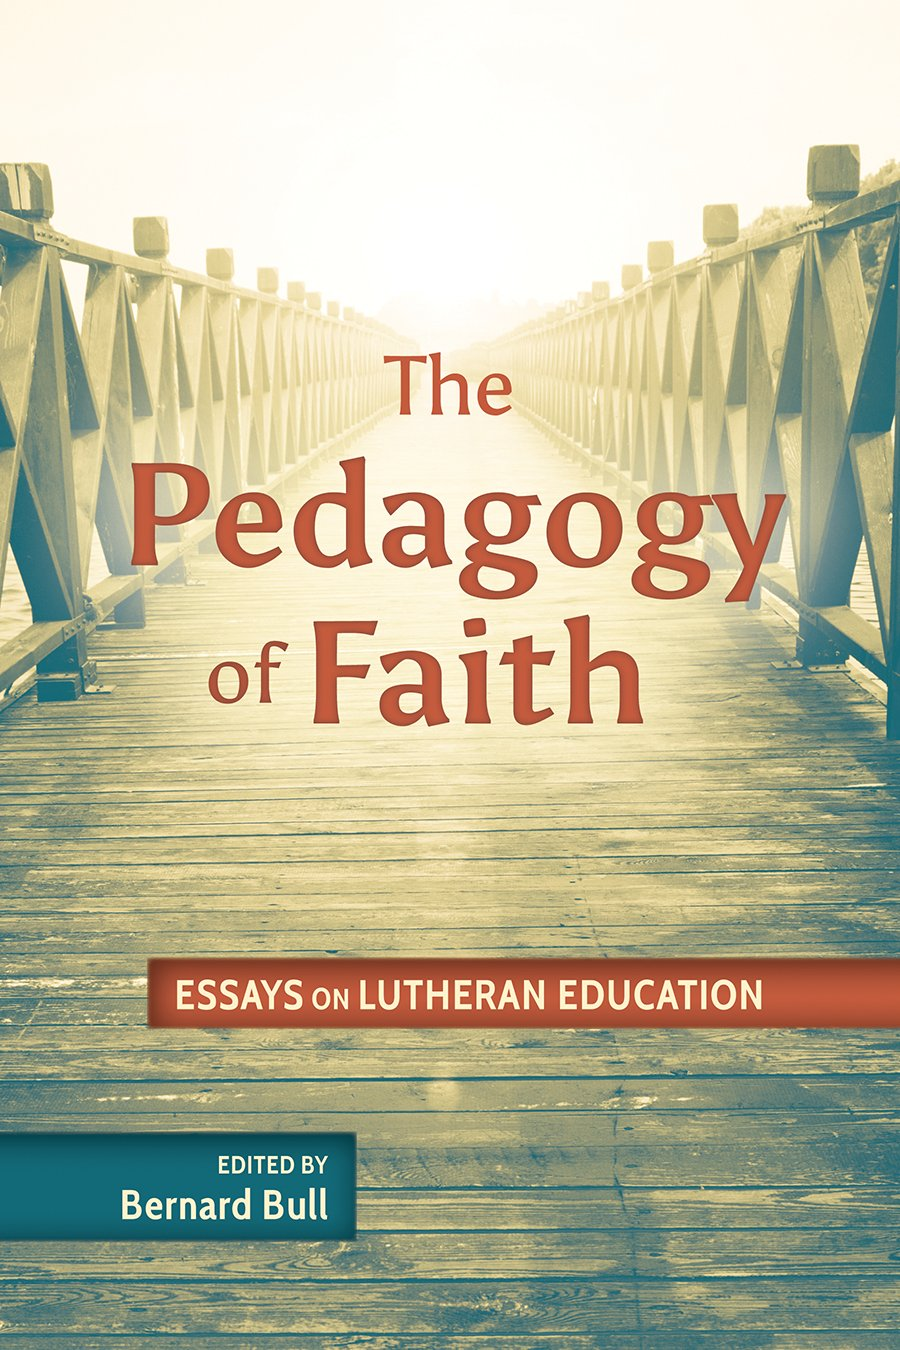 the pedagogy of faith essays on lutheran education concordia the pedagogy of faith essays on lutheran education concordia publishing house bernard bull 9780758654496 com books